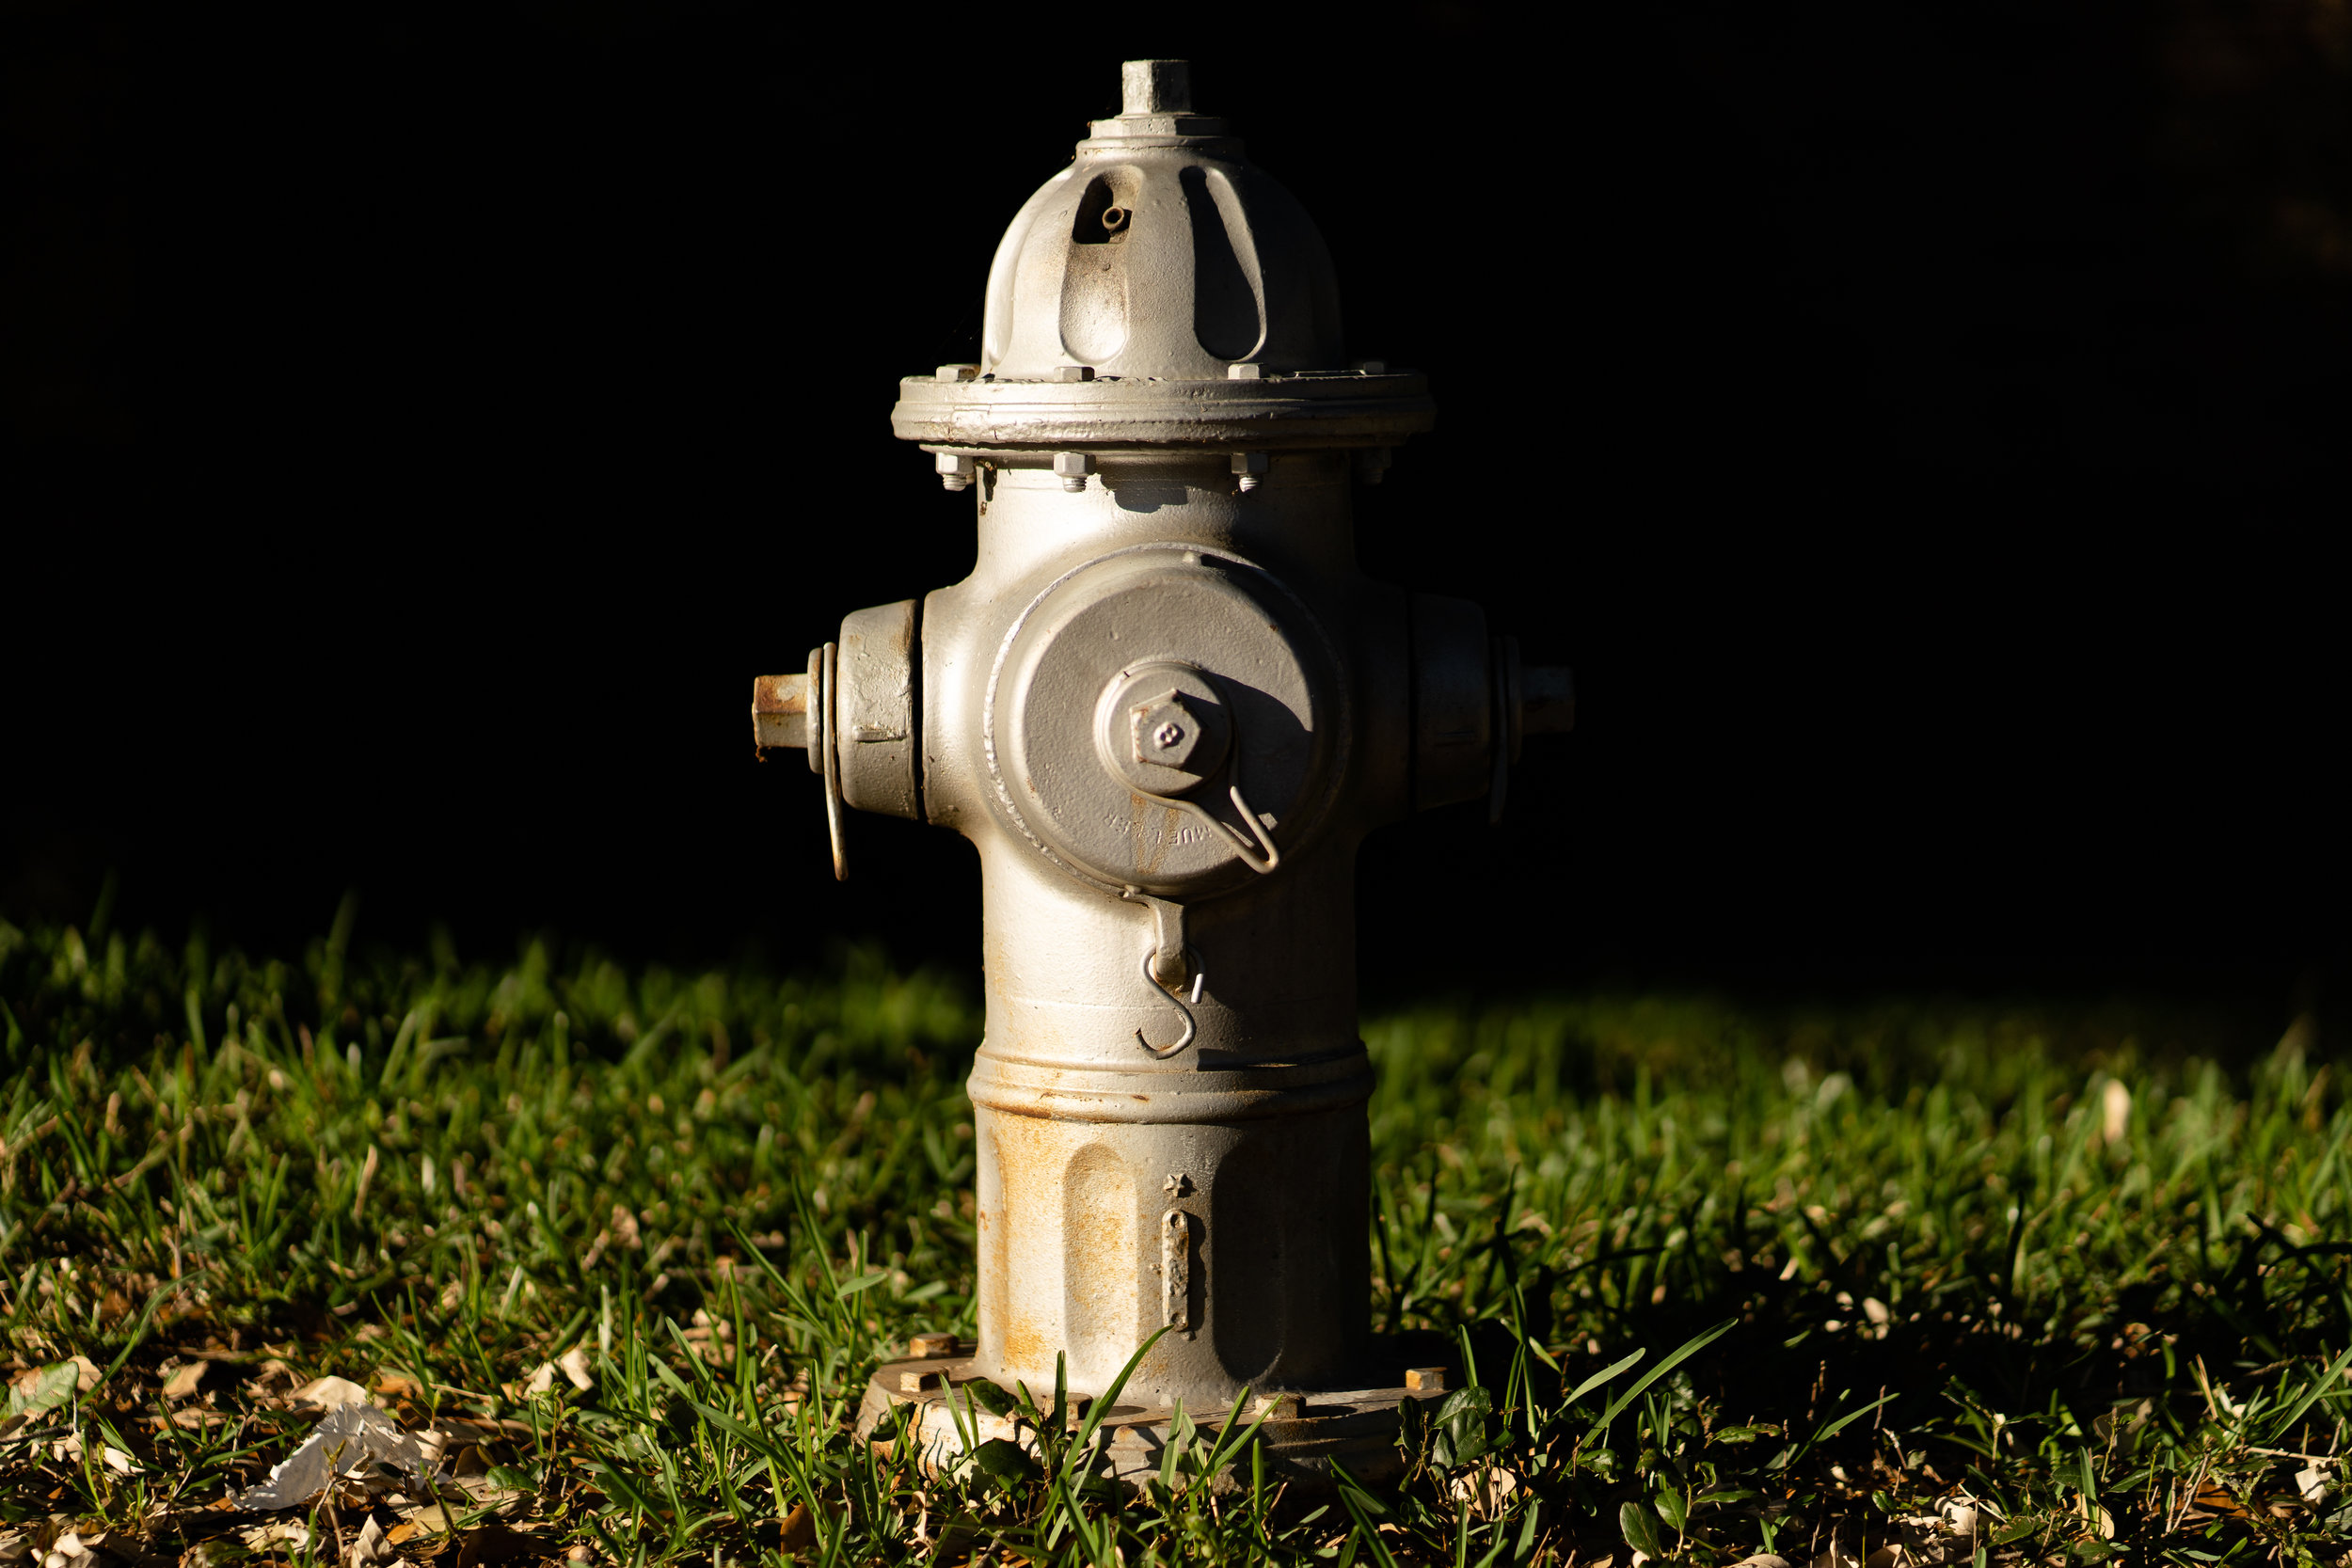 This was made with an 85 mm lens on a full-frame camera. The shadow in the background is brought much closer, so you cannot see what is behind the fire hydrant.